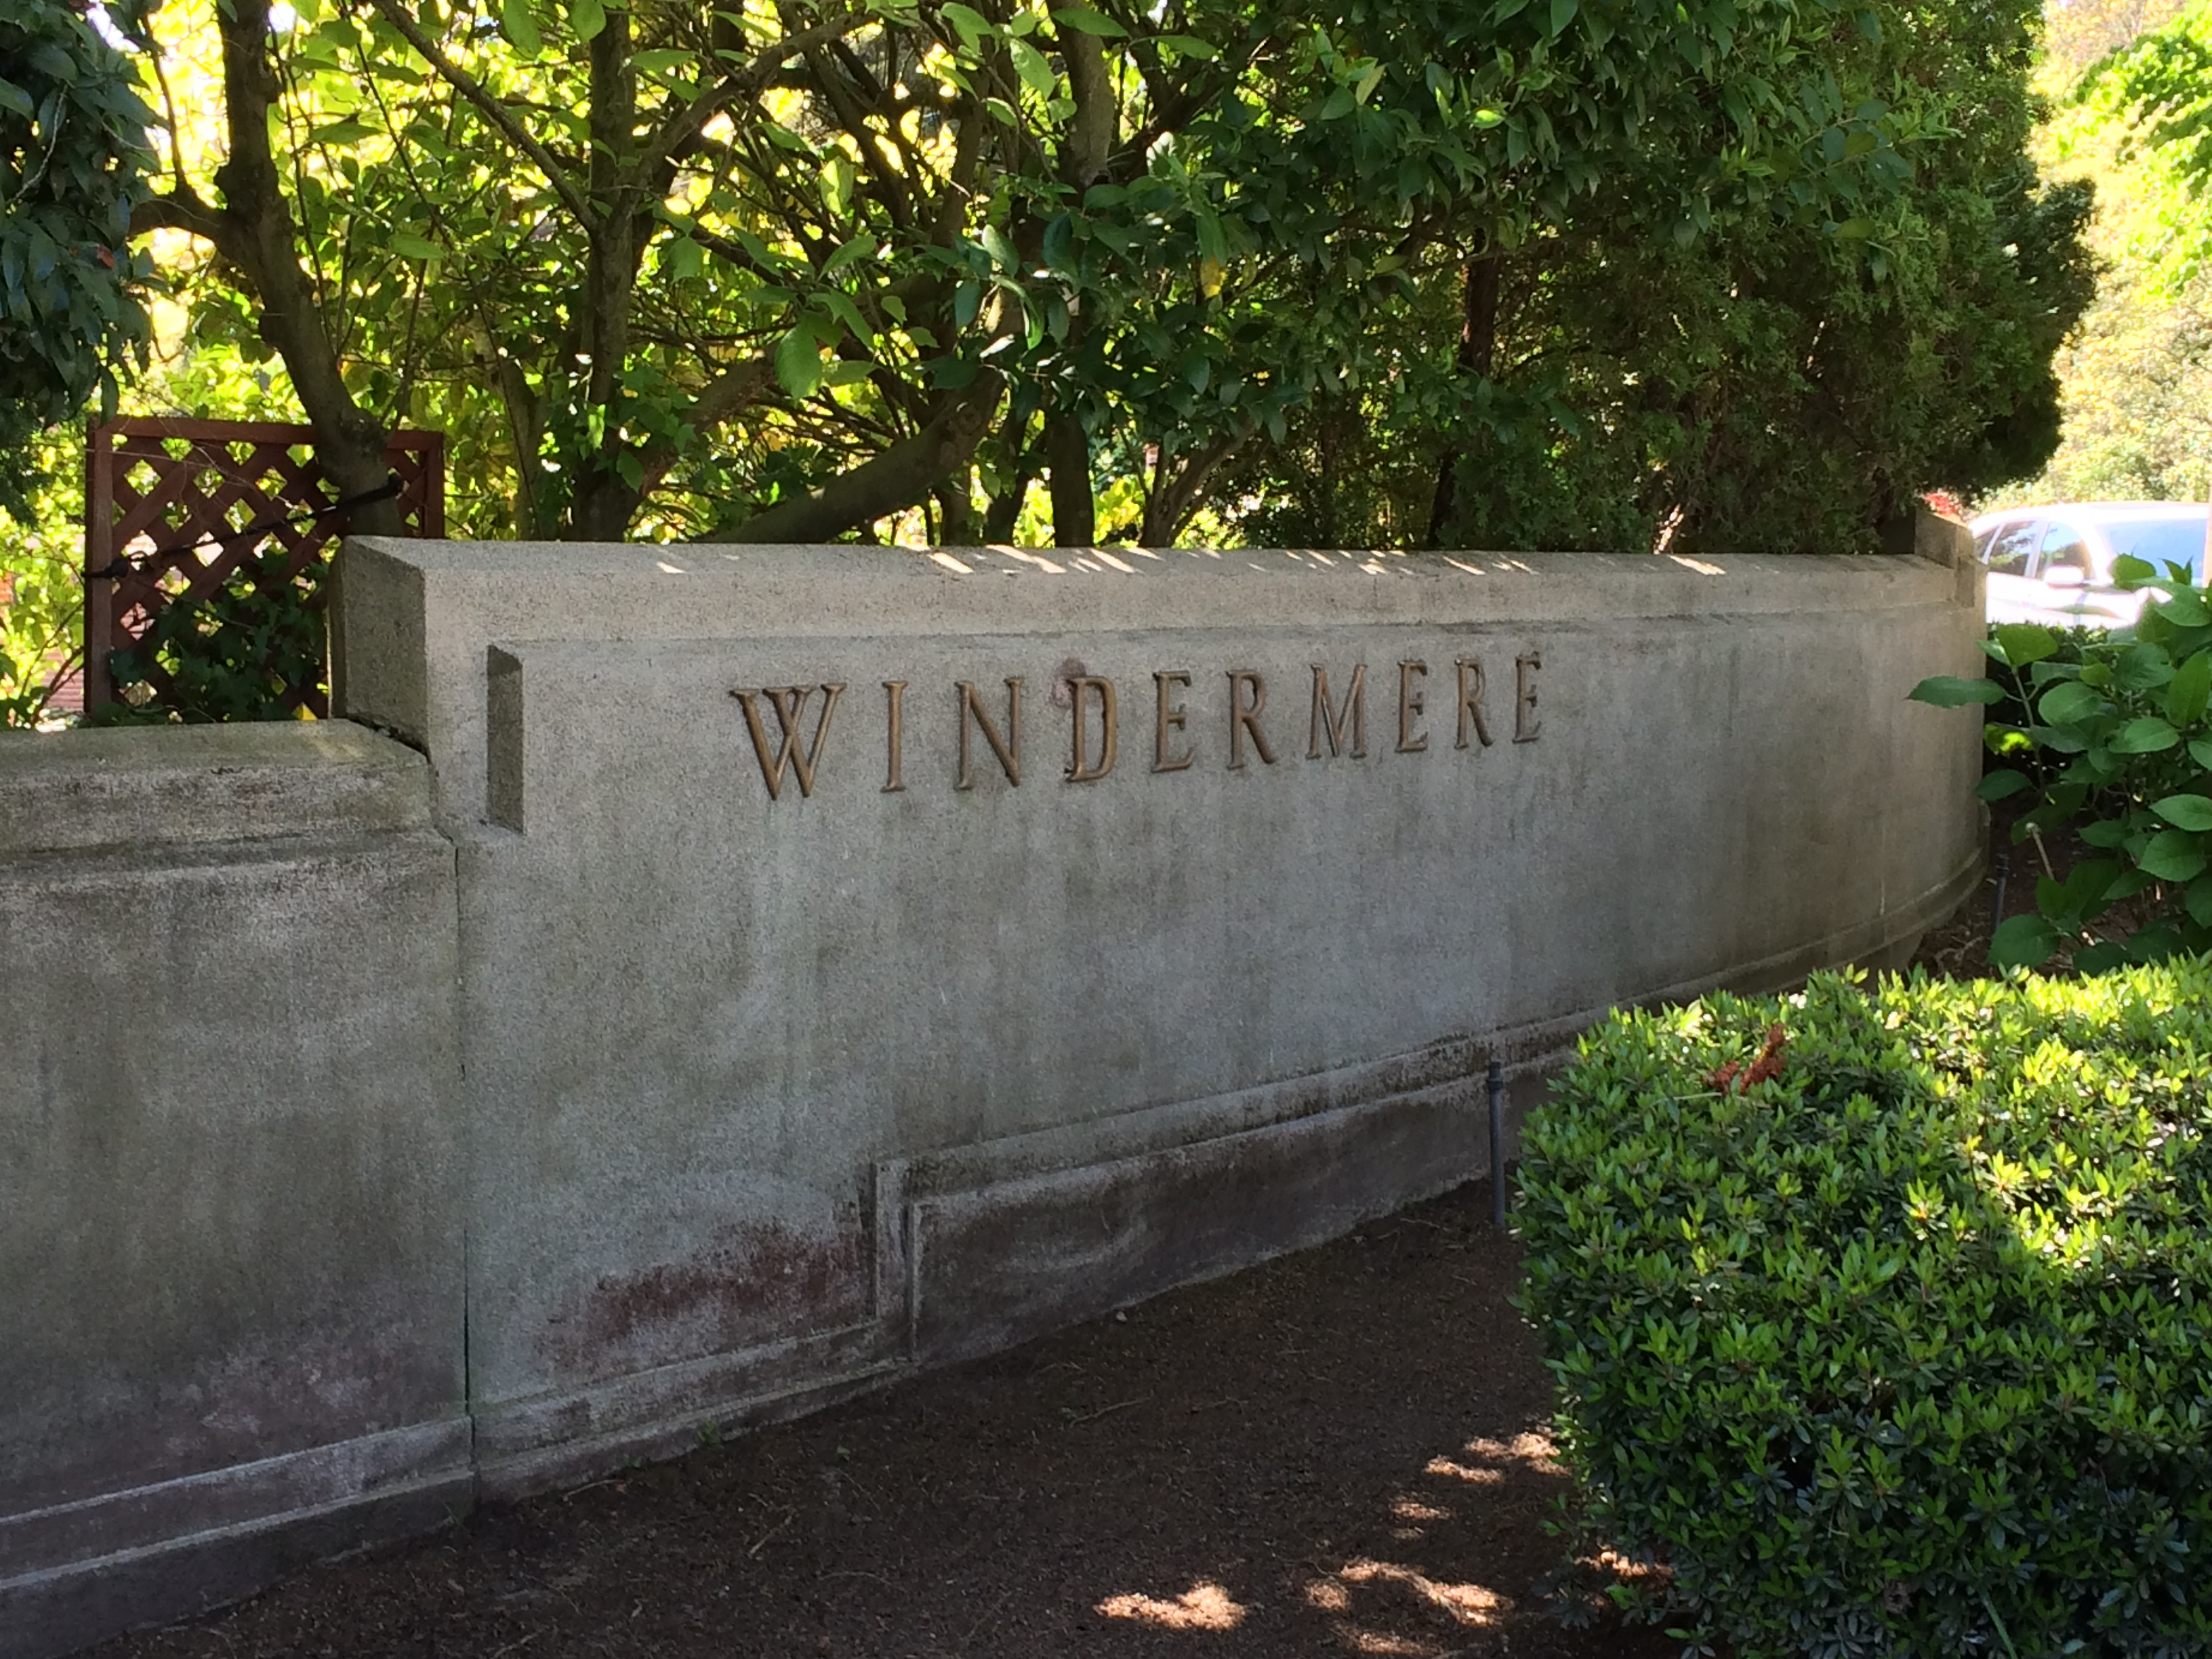 Winderemere – sign